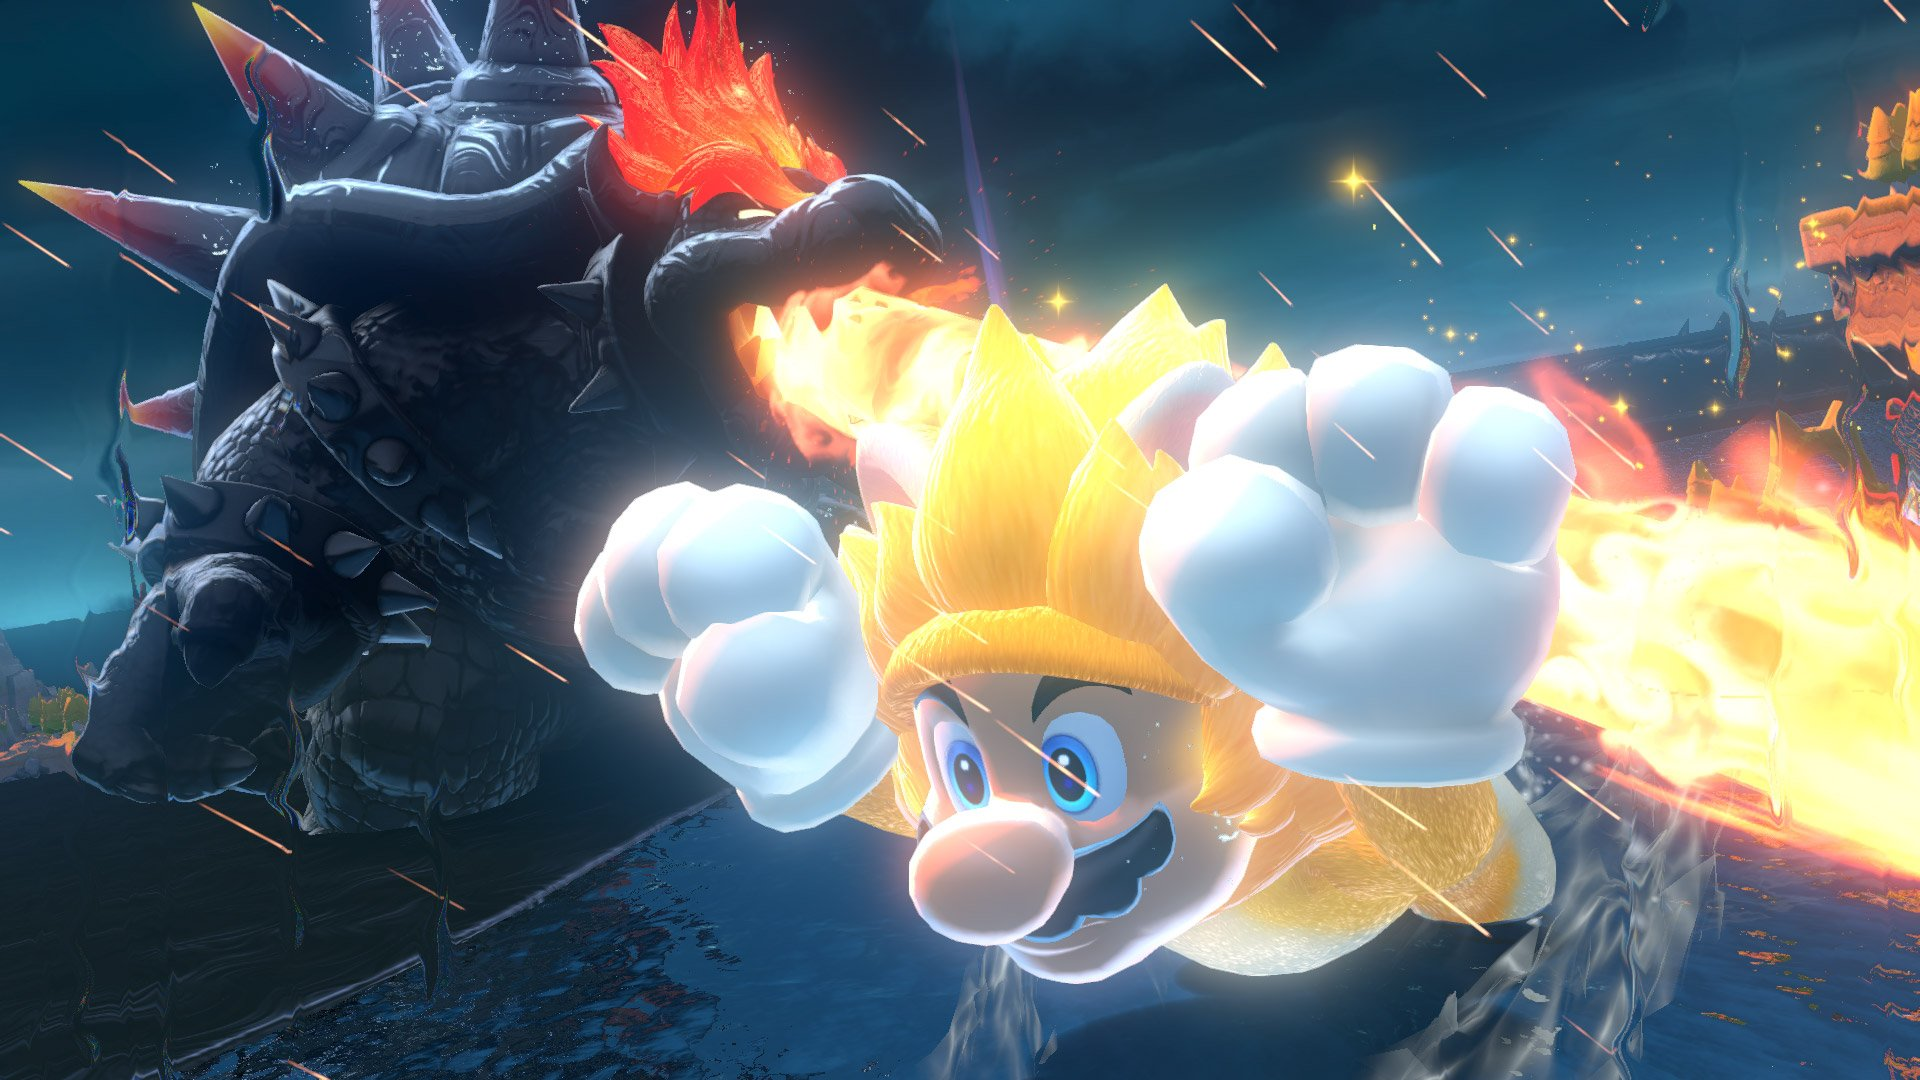 Gallery: Huge batch of Bowser's Fury screens show Mario's Switch adventure - Video Games Chronicle